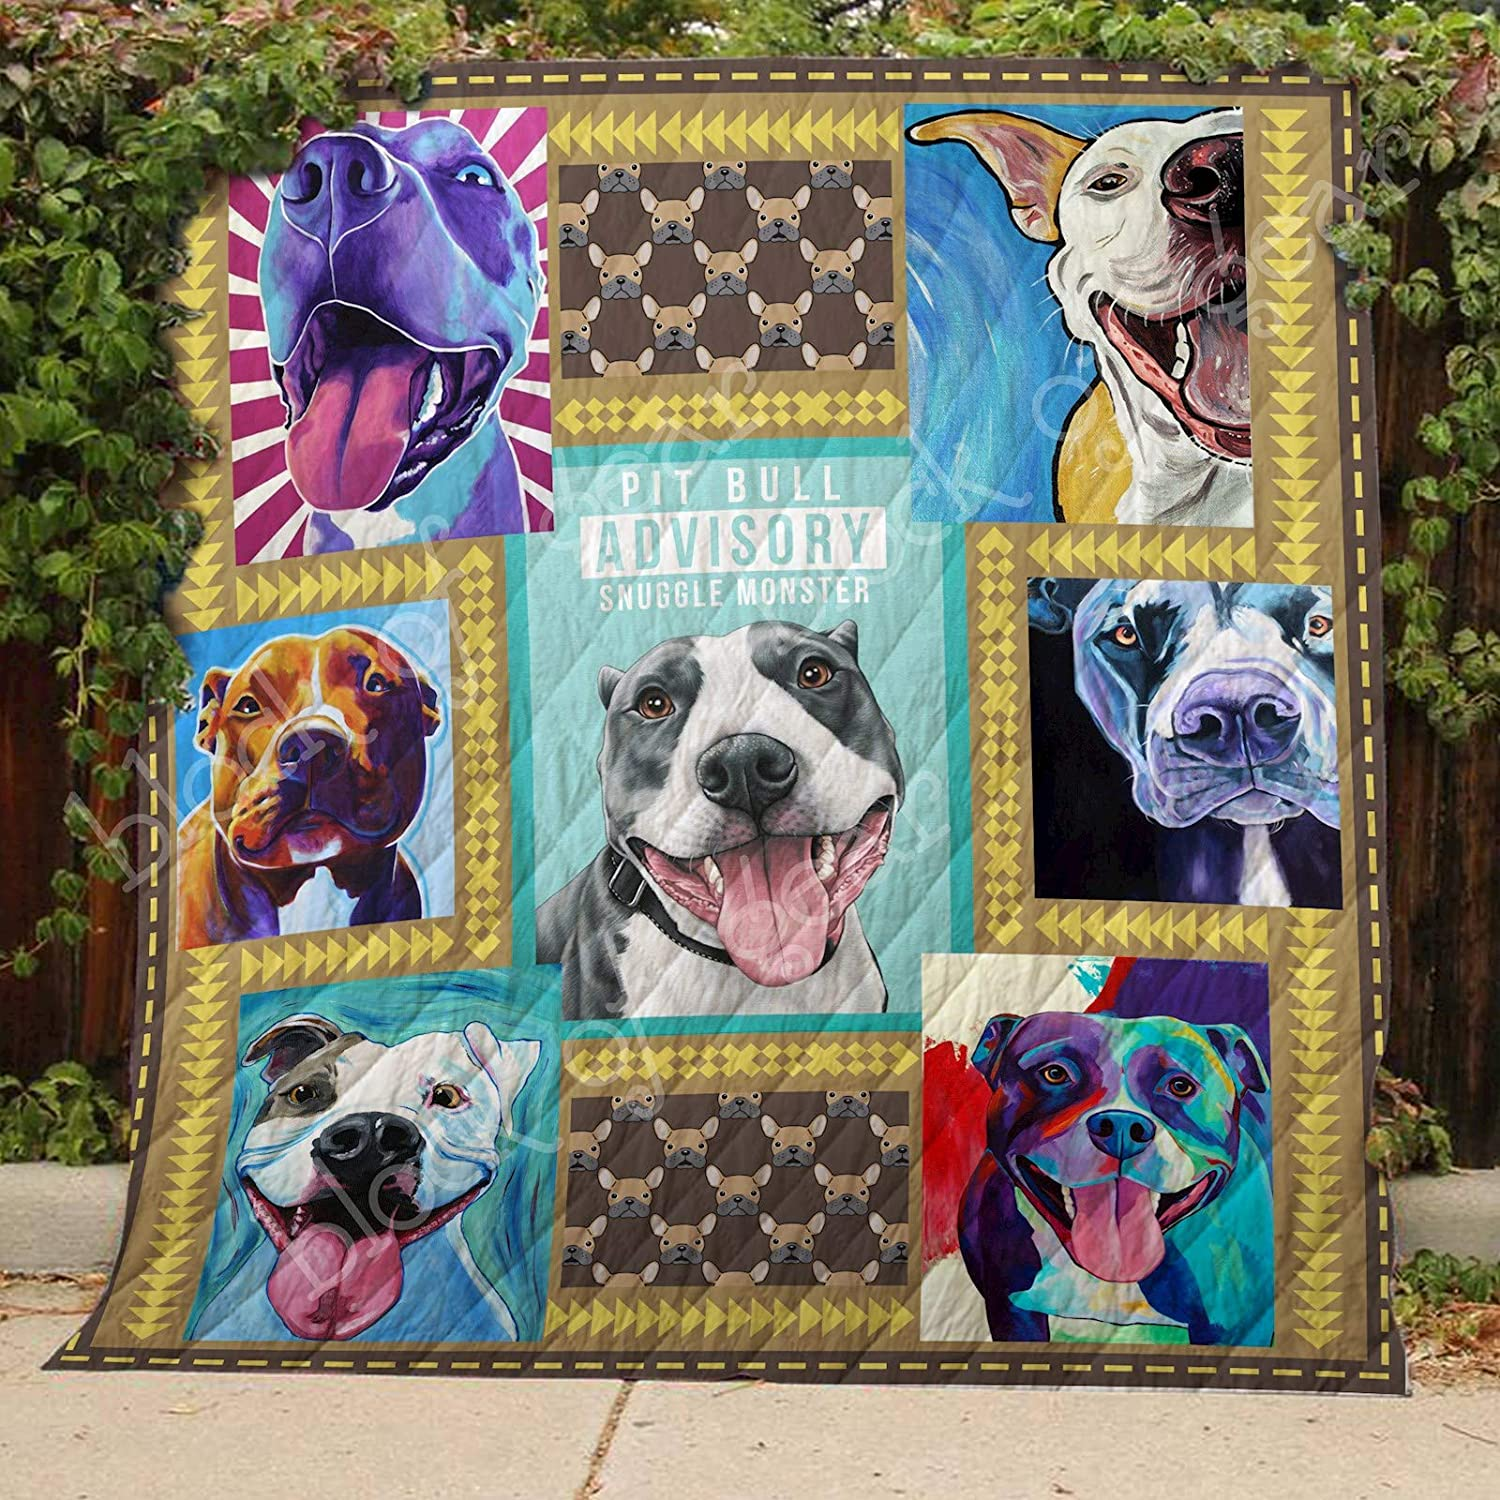 Pit Bull Quilt TH486, Queen All-Season Quilts Comforters with Reversible Cotton King Queen Twin Size - Best Decorative Quilts-Unique Quilted for Gifts